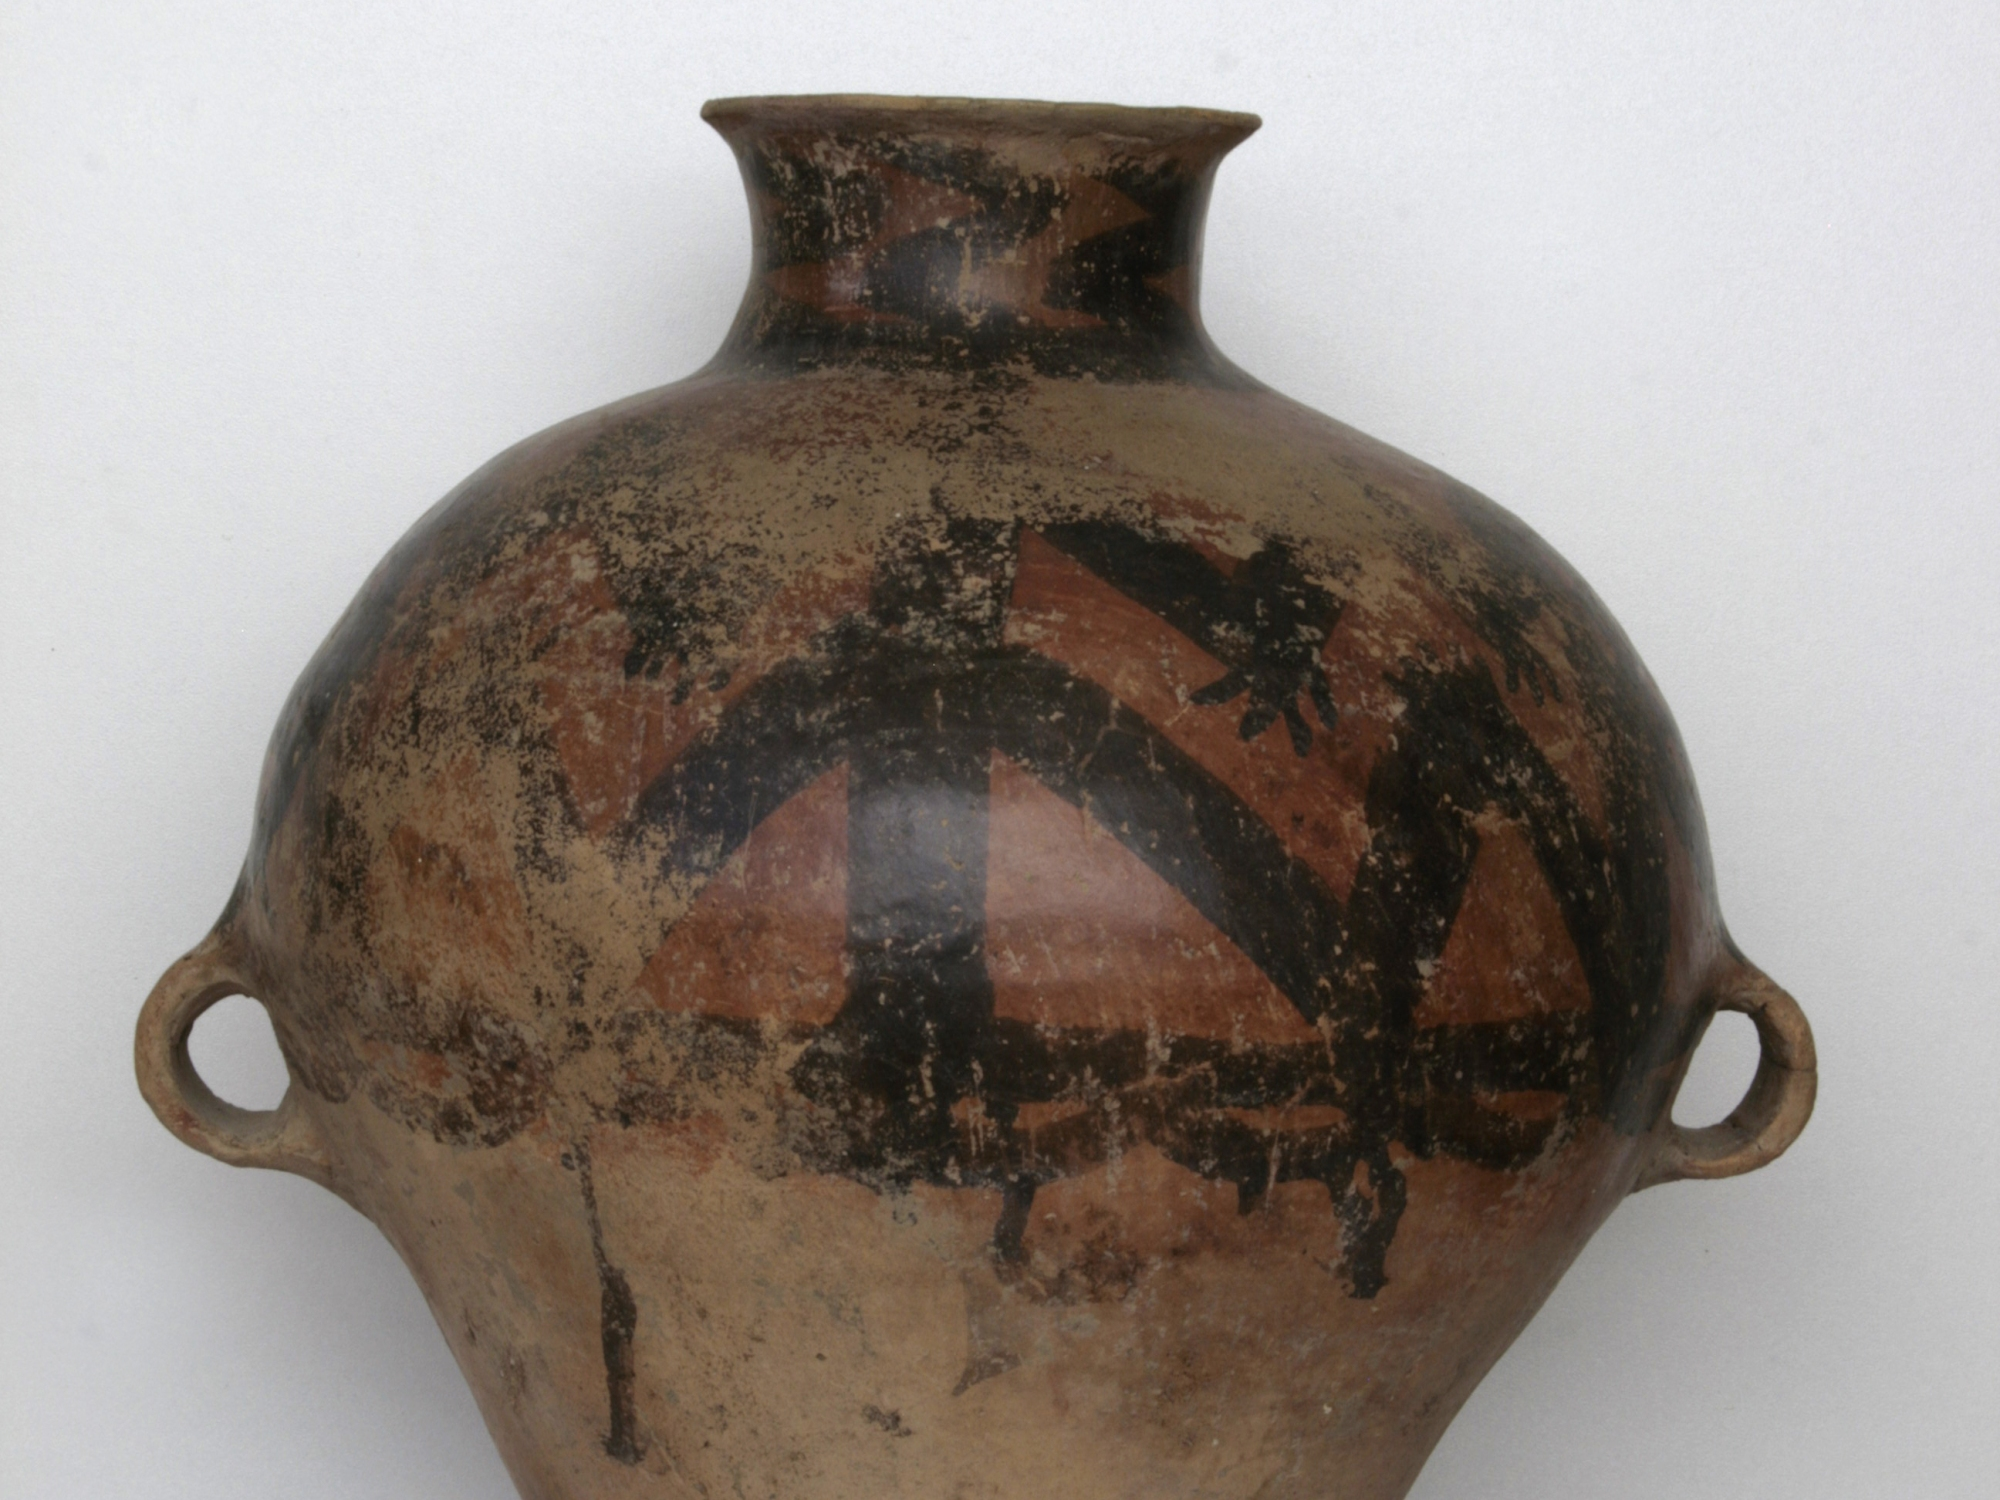 Yangshao culture storage jar collectingchineseceramics early chinese ceramics reviewsmspy